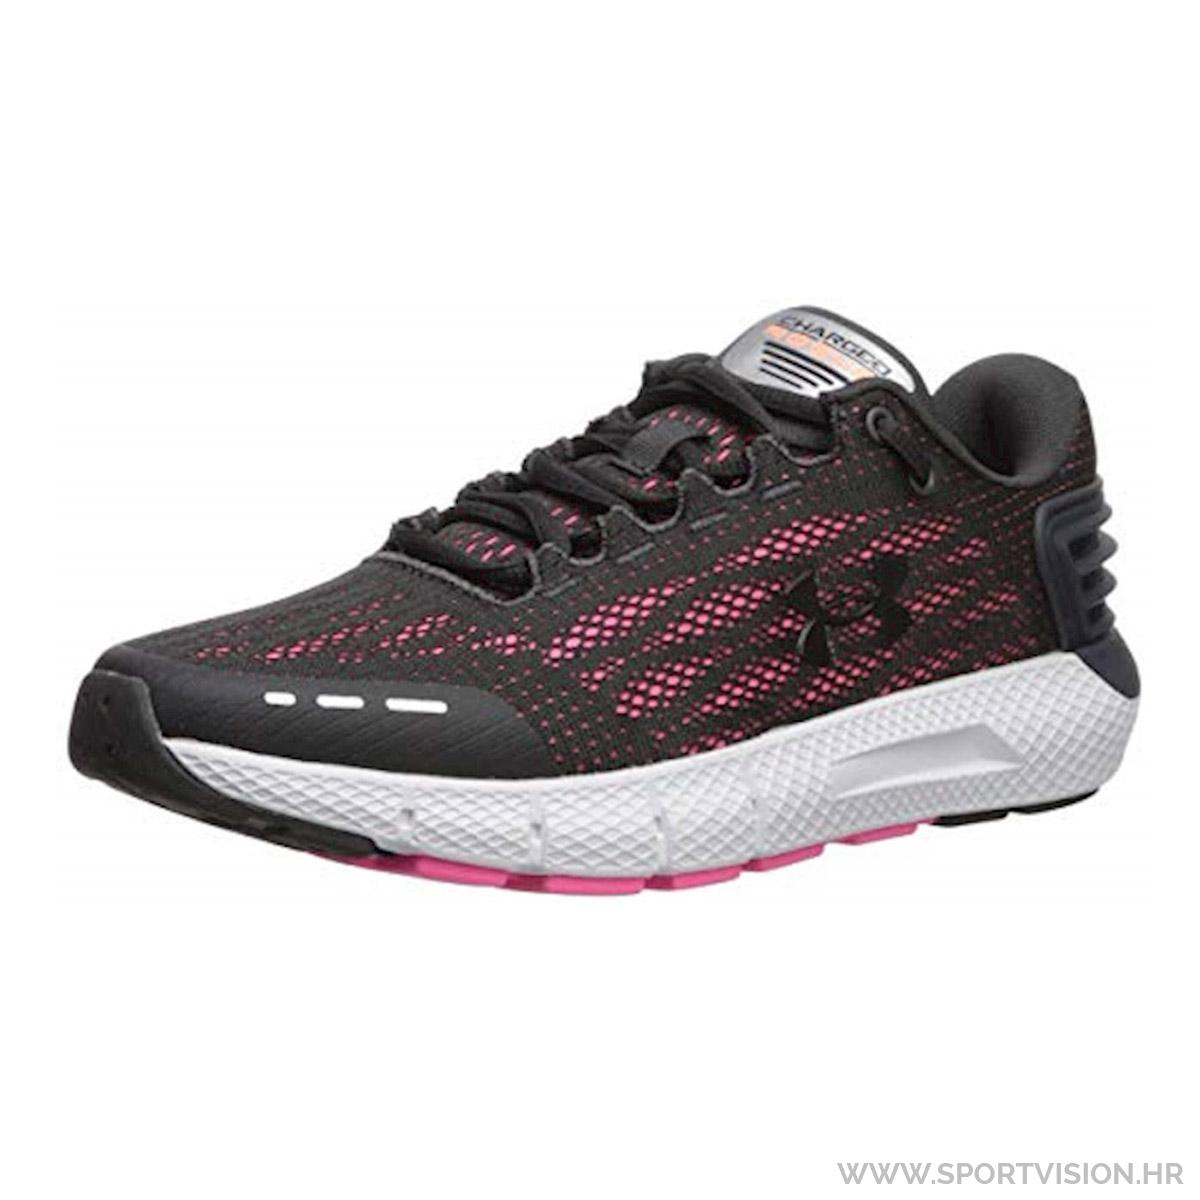 UNDER ARMOUR tenisice W CHARGED ROGUE